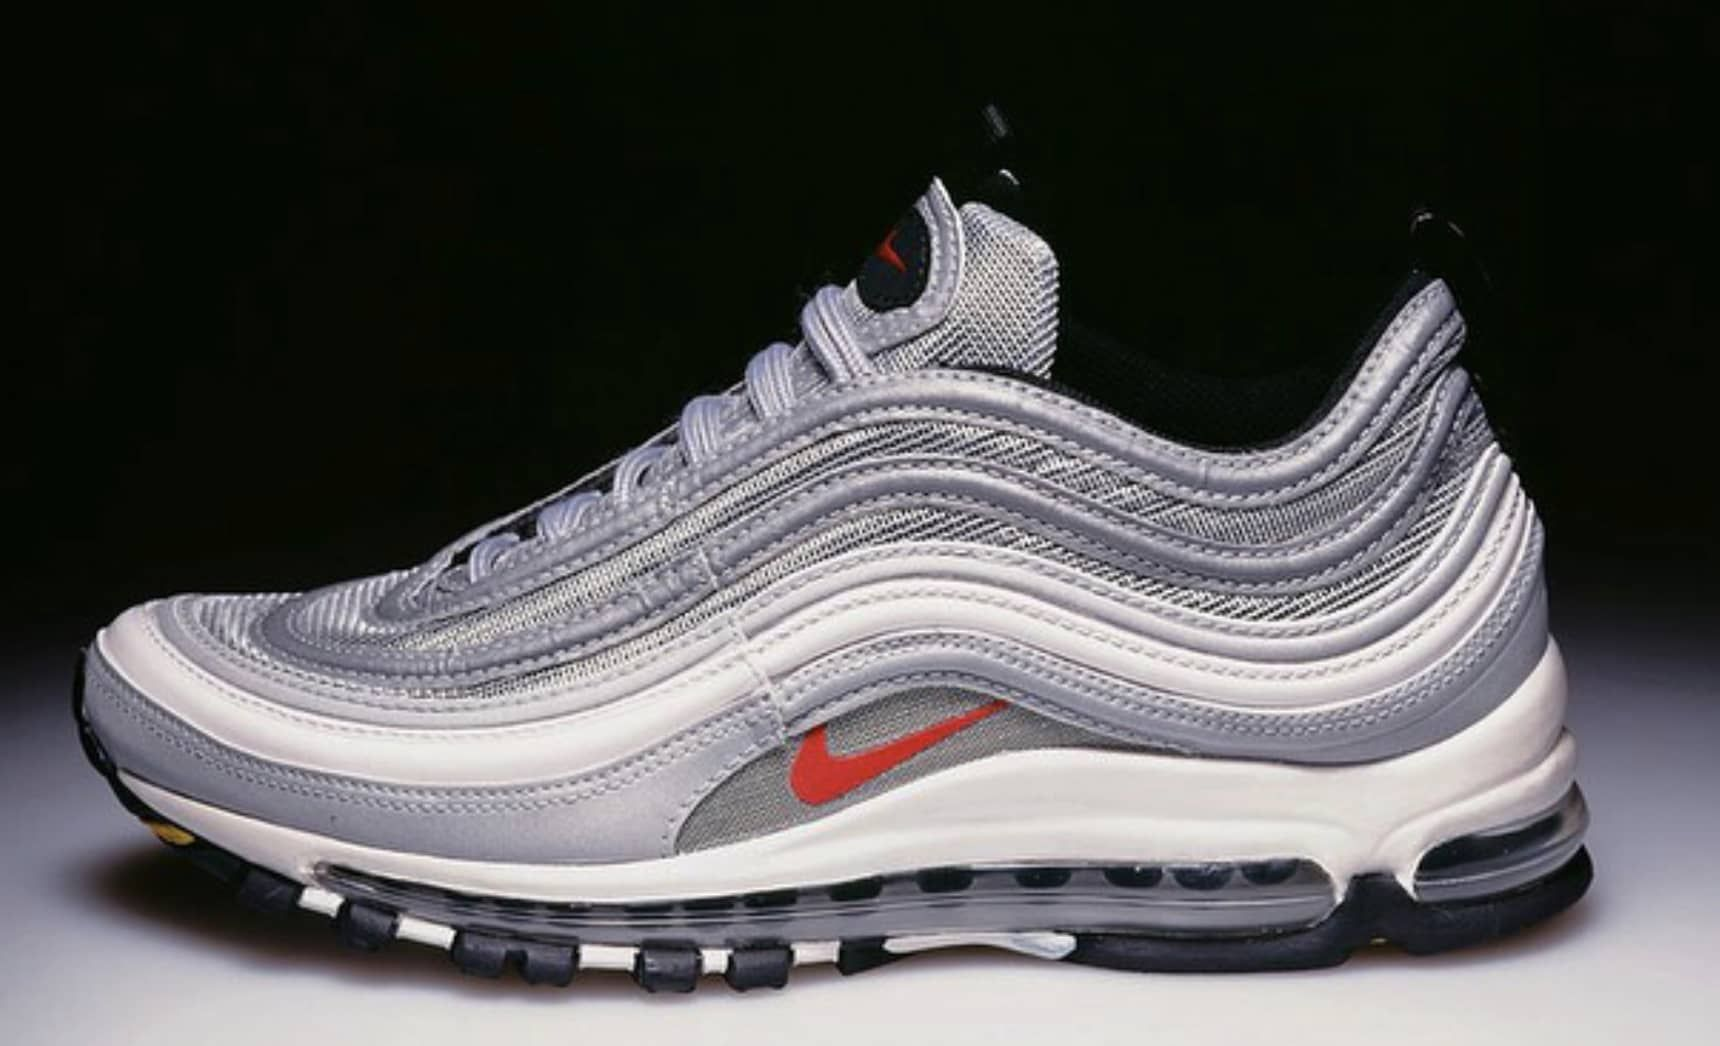 Nike Air Max 97 Designer Christian Tresser Shows Original  Silver Bullet   Sample  fd54d2f44